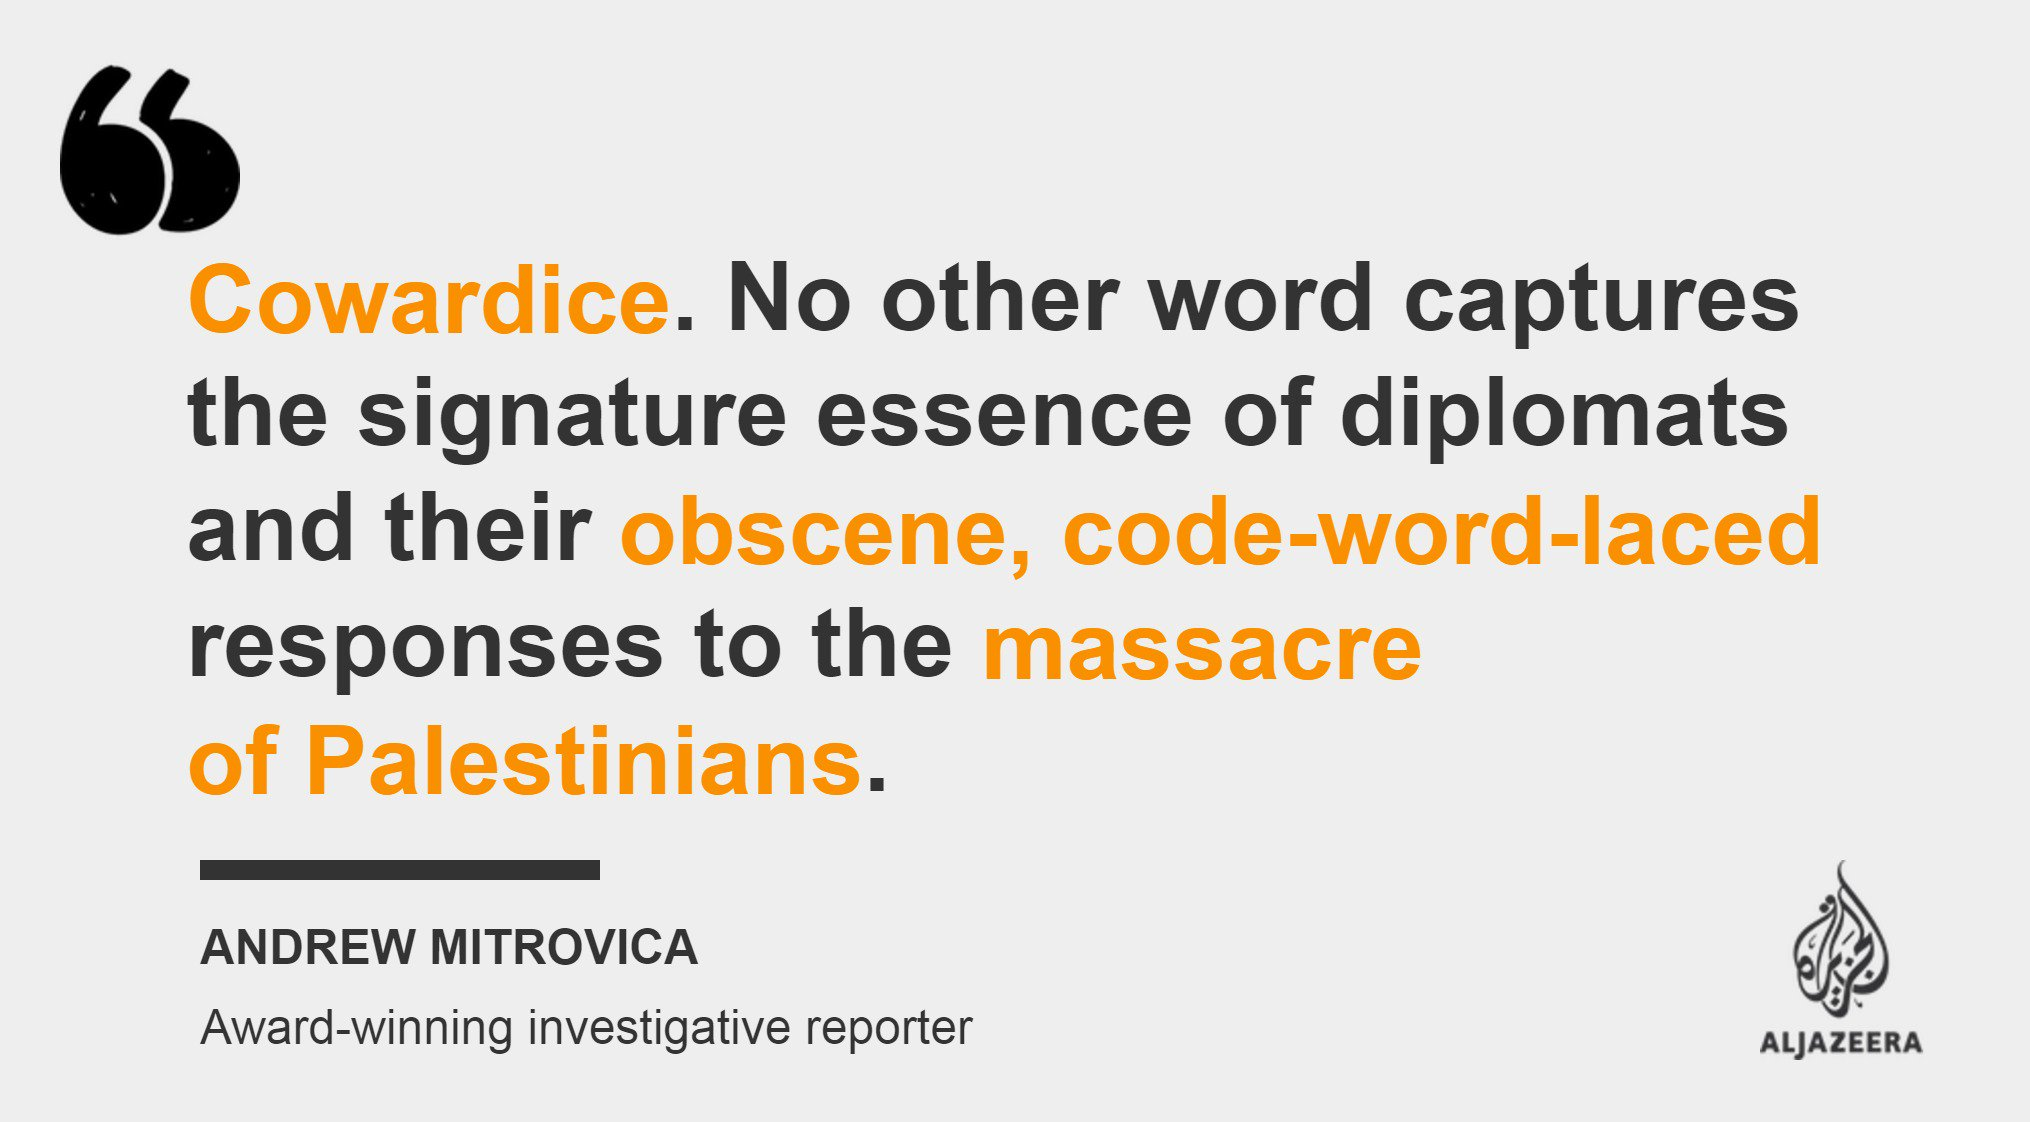 The Gaza massacre exposed international cowardice https://t.co/NorFKWZbQC — #AJOpinion https://t.co/dNs8NMAi9r